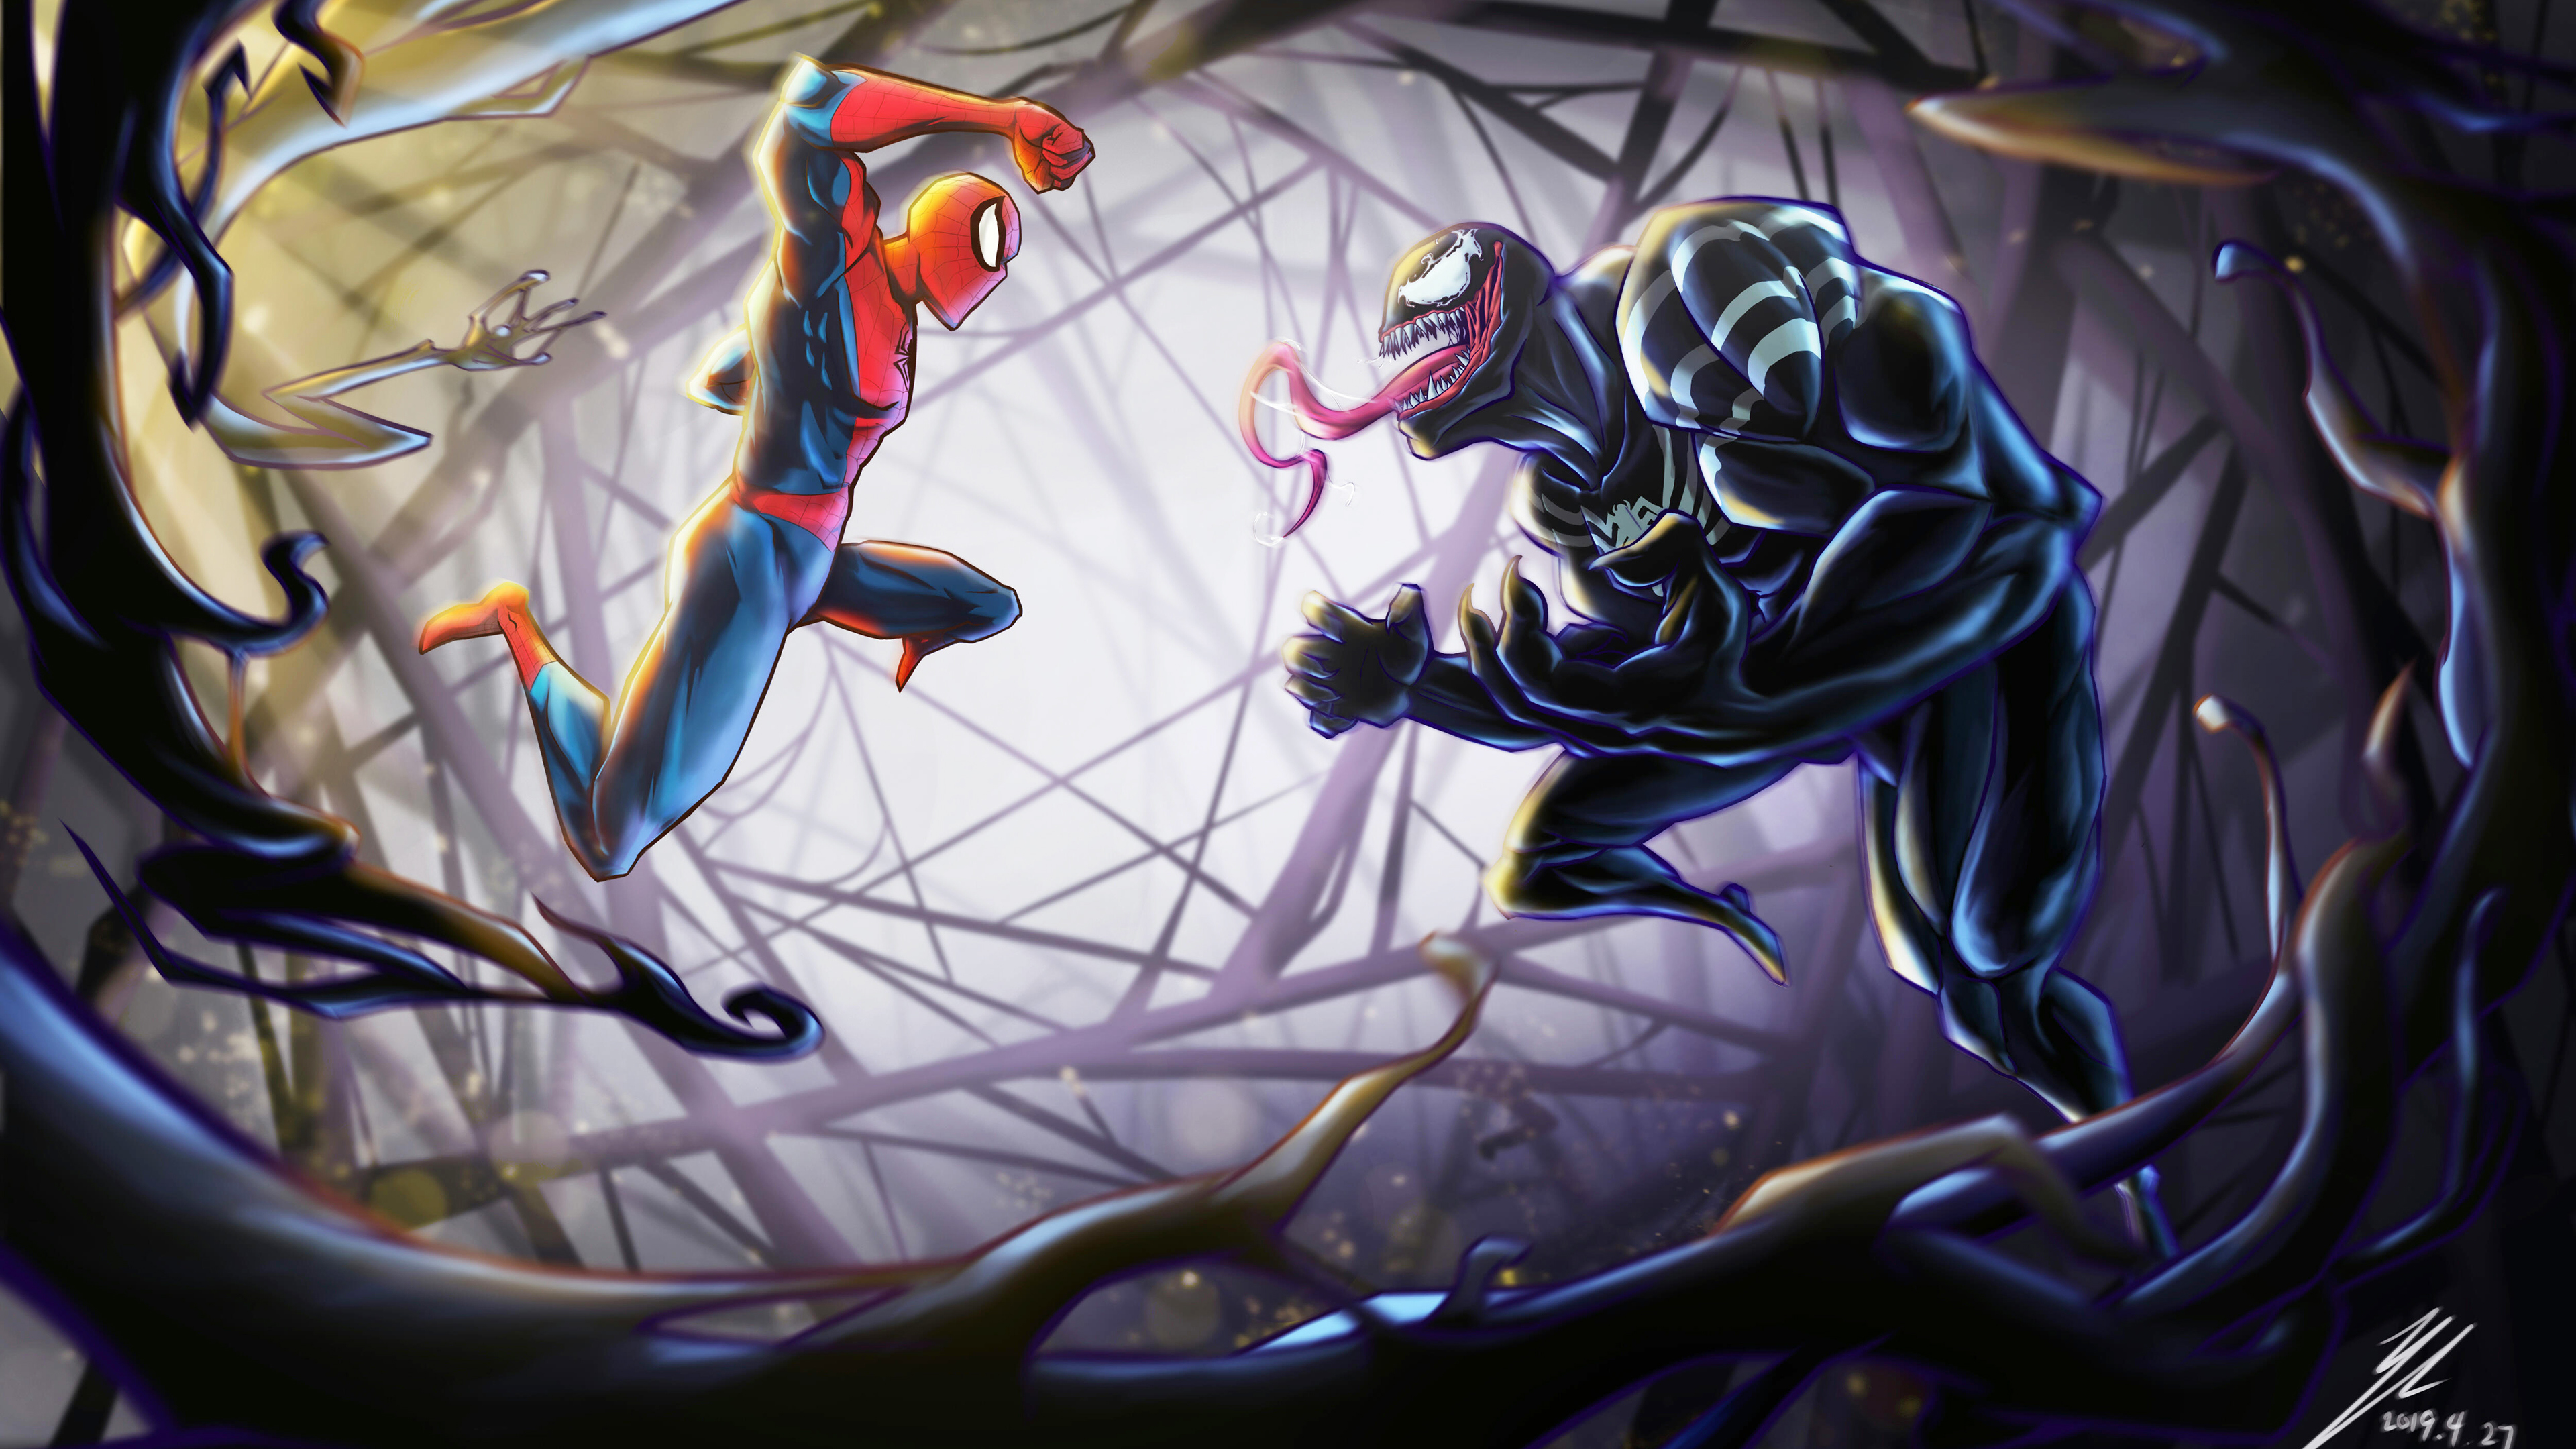 spiderman vs venom 4k 1557260473 - Spiderman Vs Venom 4k - Venom wallpapers, supervillain wallpapers, superheroes wallpapers, spiderman wallpapers, hd-wallpapers, behance wallpapers, 4k-wallpapers